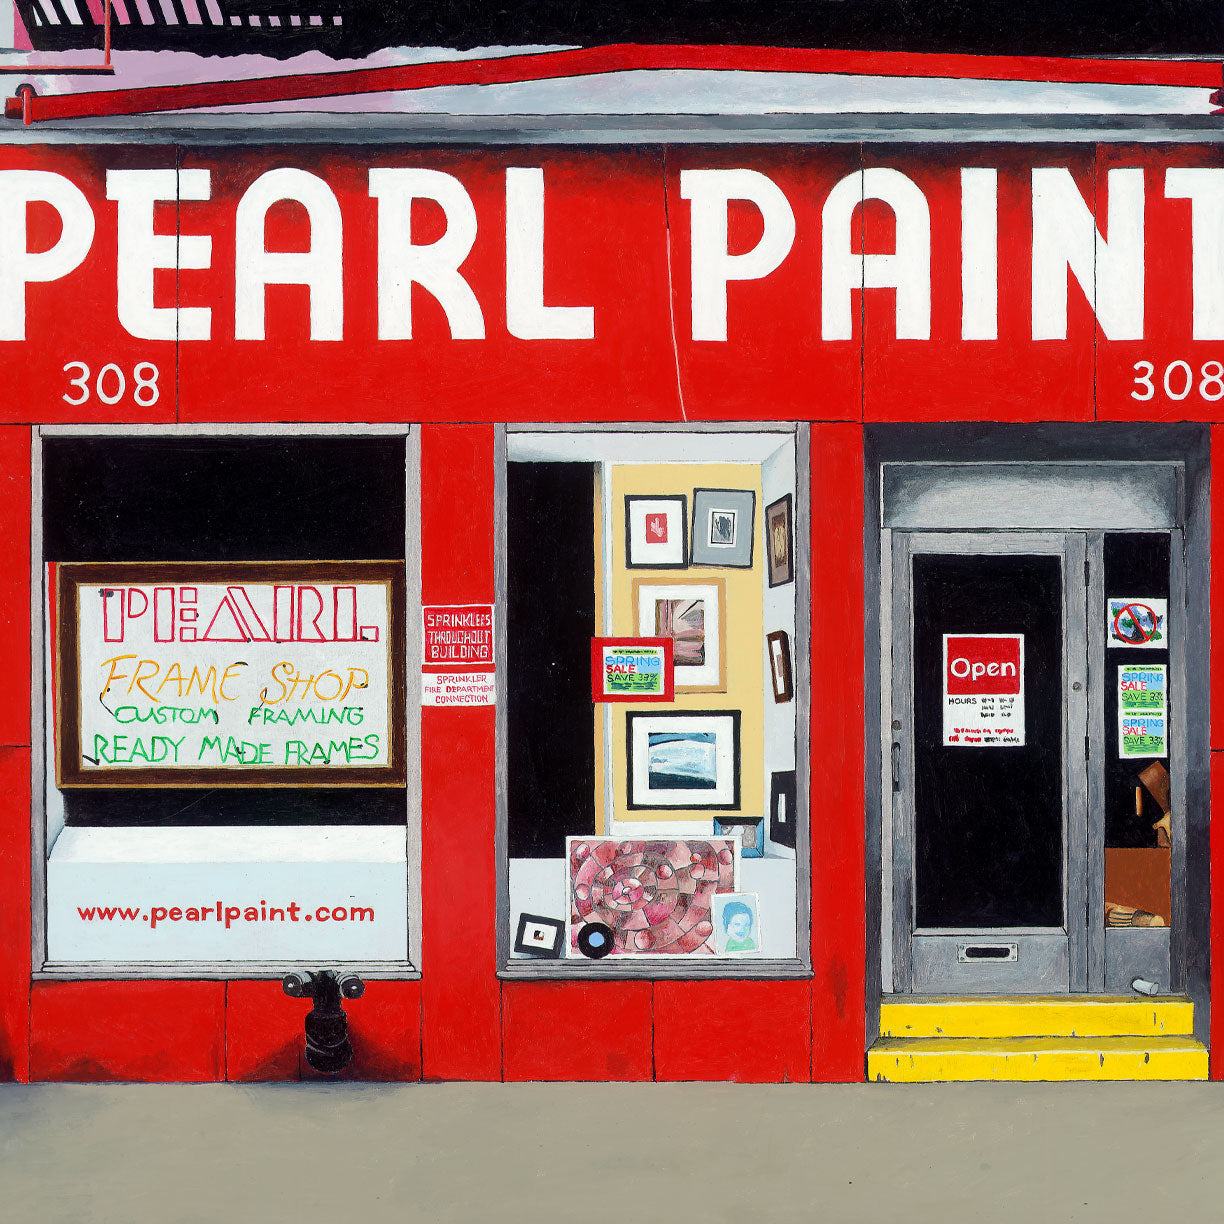 Pearl Paint | Giclee | Limited Edition Prints | Storefront Series